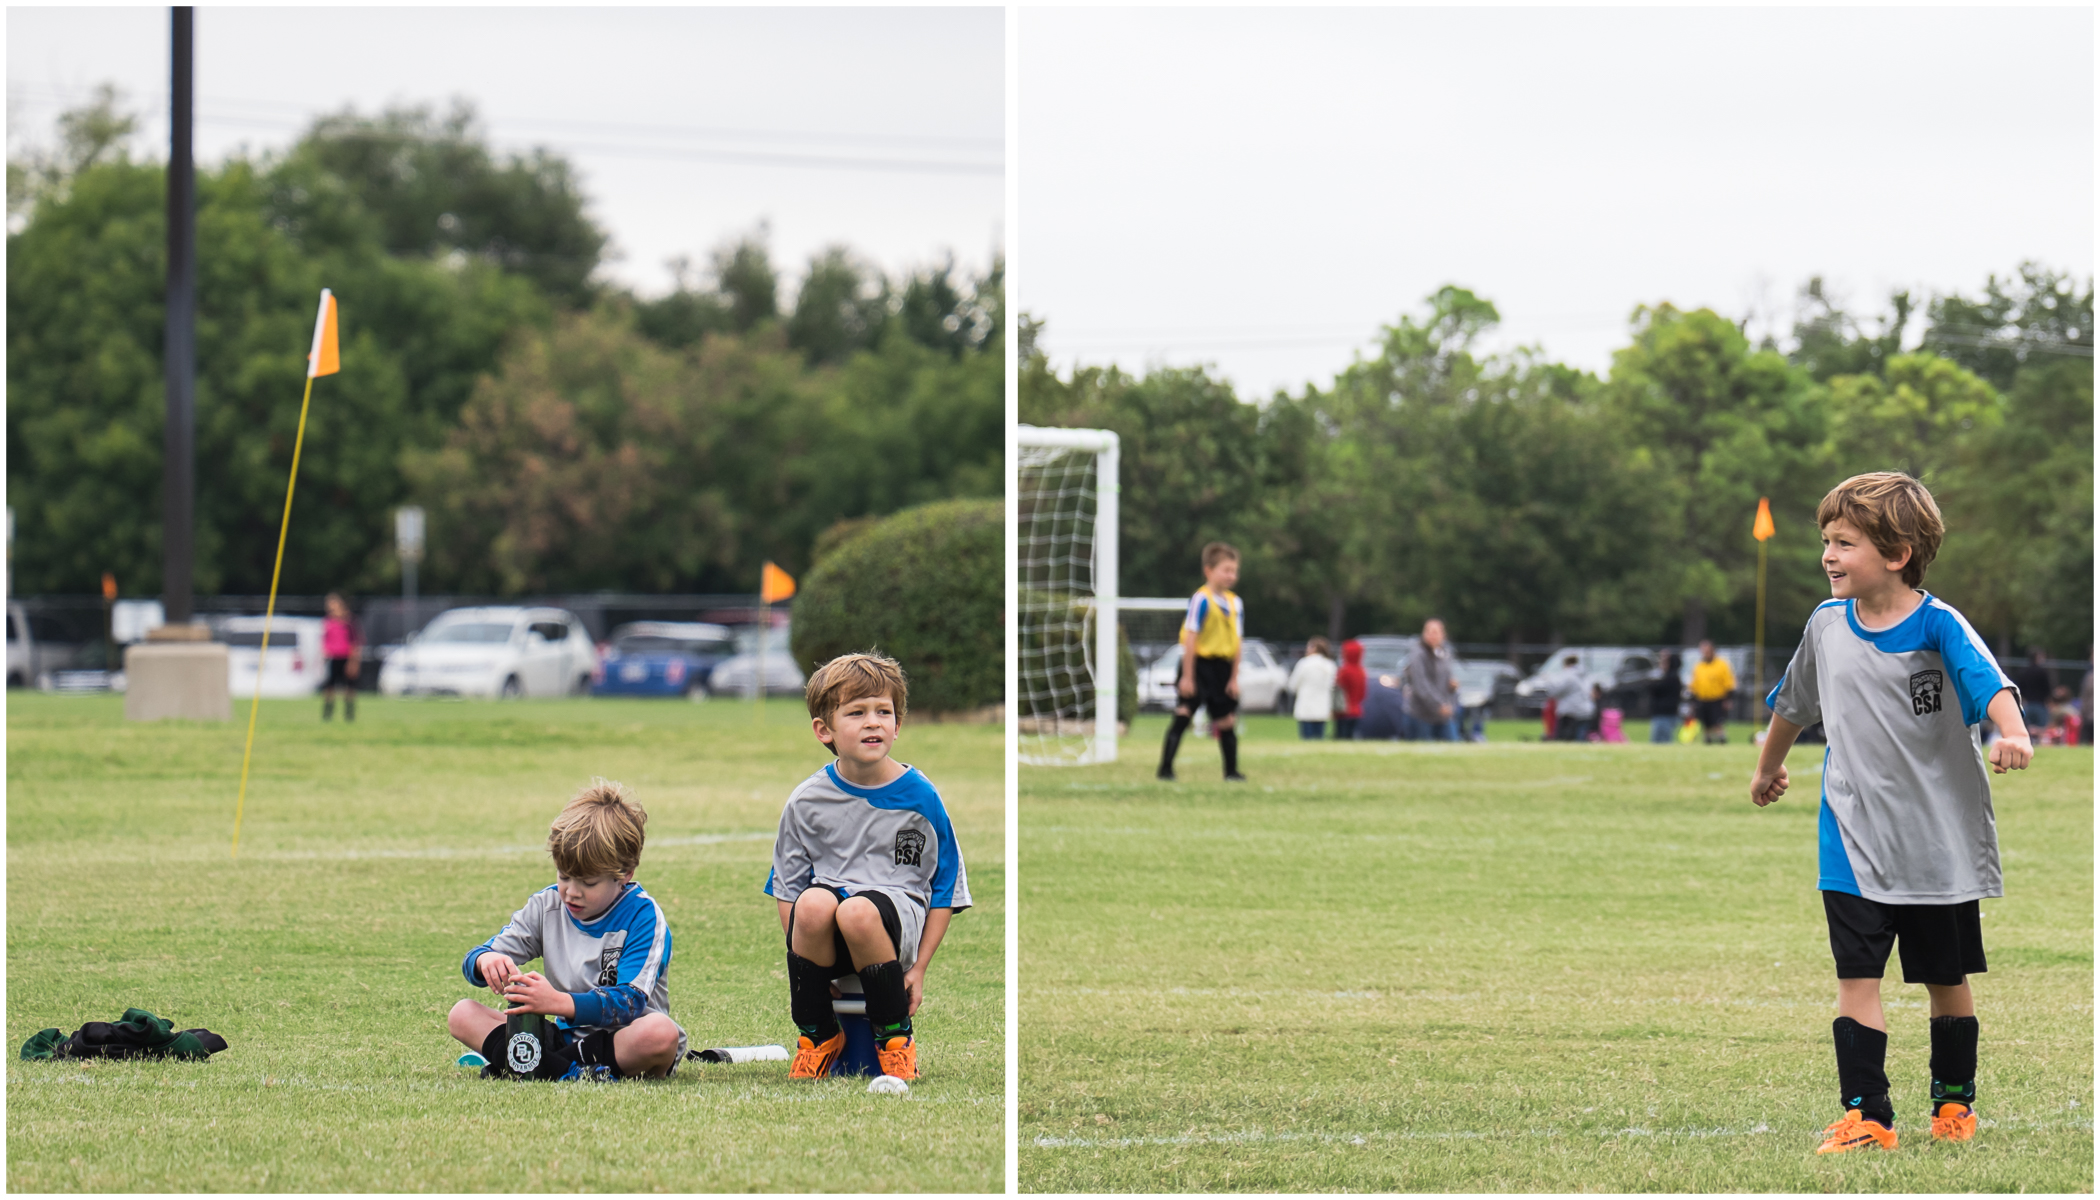 In the morning, we had a soccer game. Due to all of the crazy prep going on at our house -- not just for Michael's birthday but also for a lemonade and cookies fundraiser the kids were doing the next day -- Ella, Henry and I were 15 minutes late to the game. Right when we arrived, Wes told me I missed Michael scoring two goals.  I could have cried.  But then he scored two more. Not that I managed to grab photos of either goal, but I got to be there which is even better.